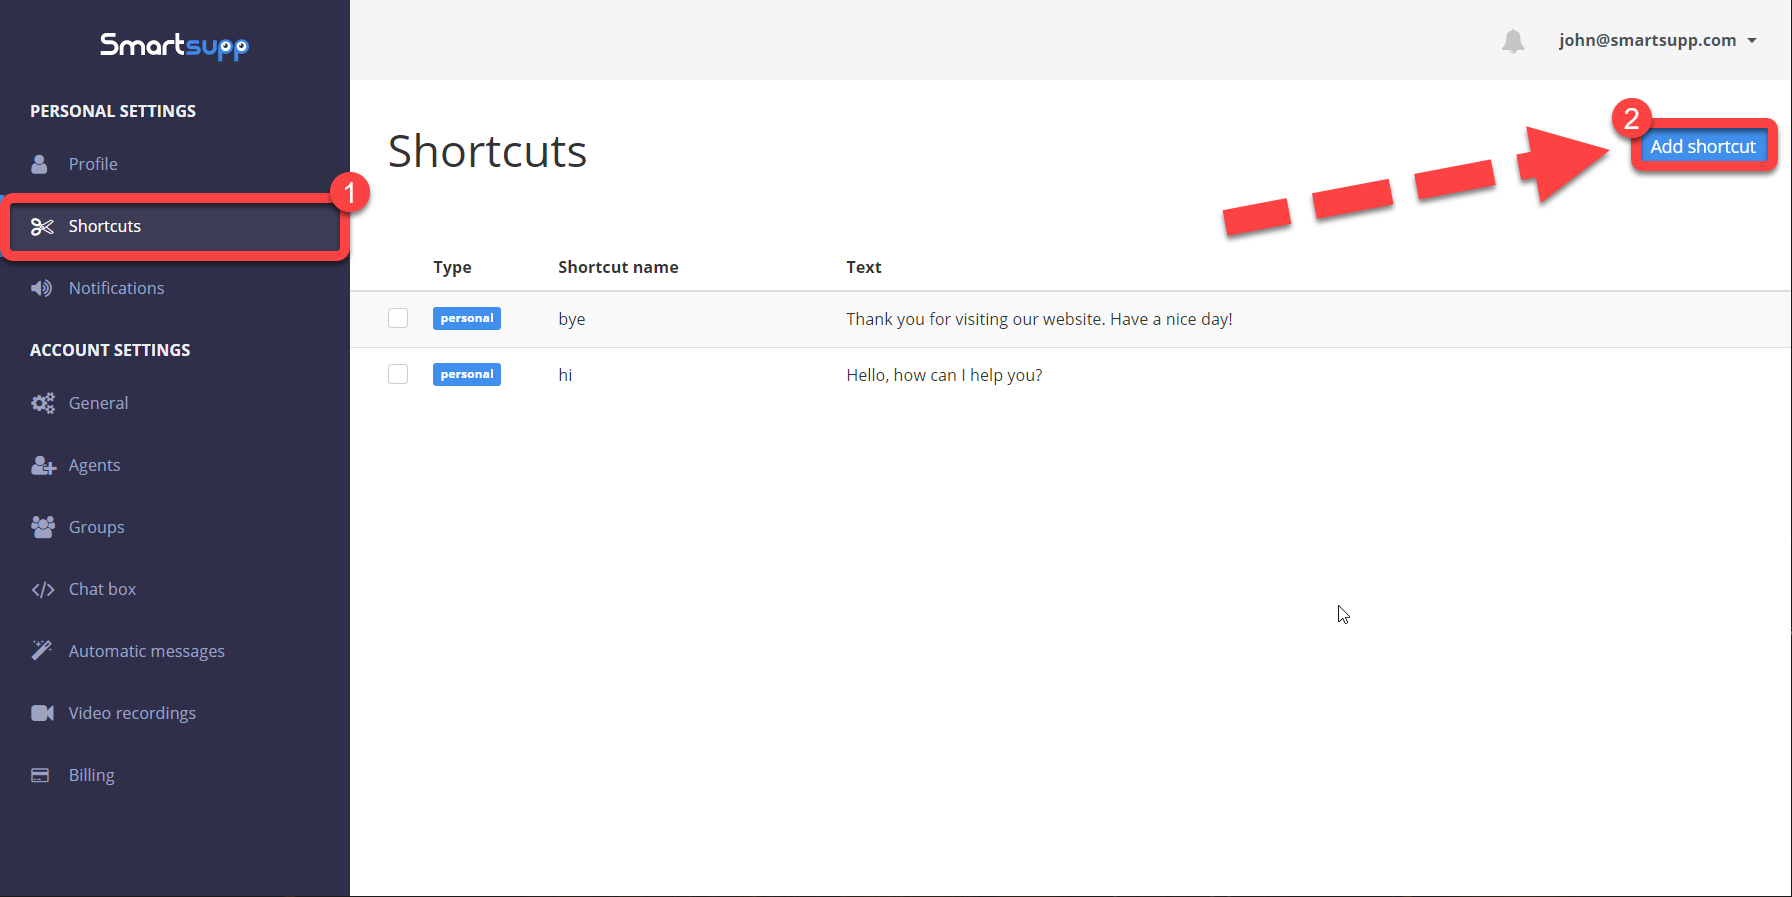 smartsupp-shortcuts-en-01